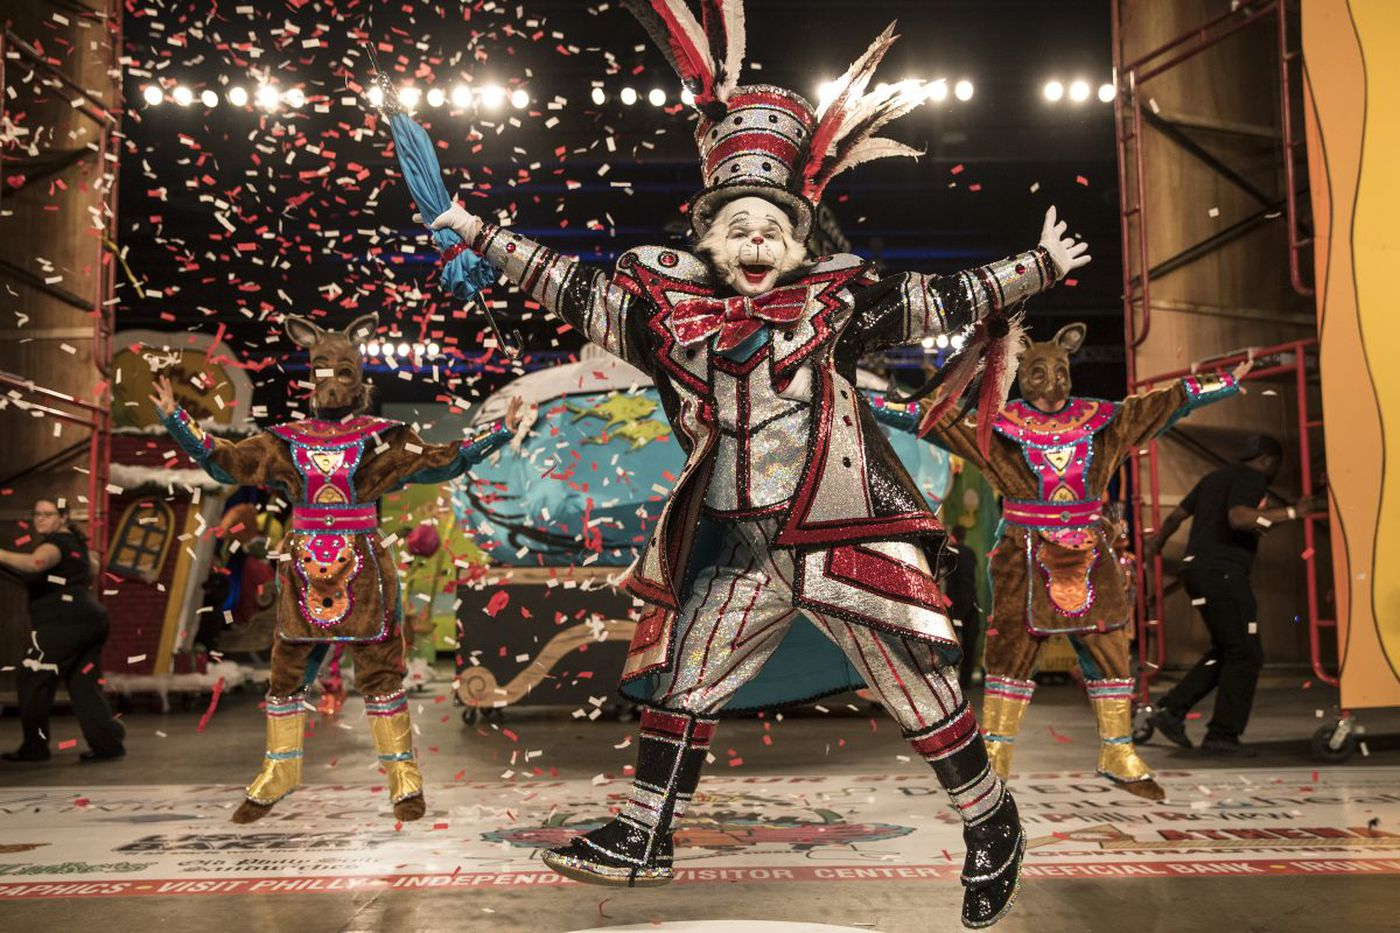 7 days of things to do in Philadelphia Dec. 31 to Jan. 5